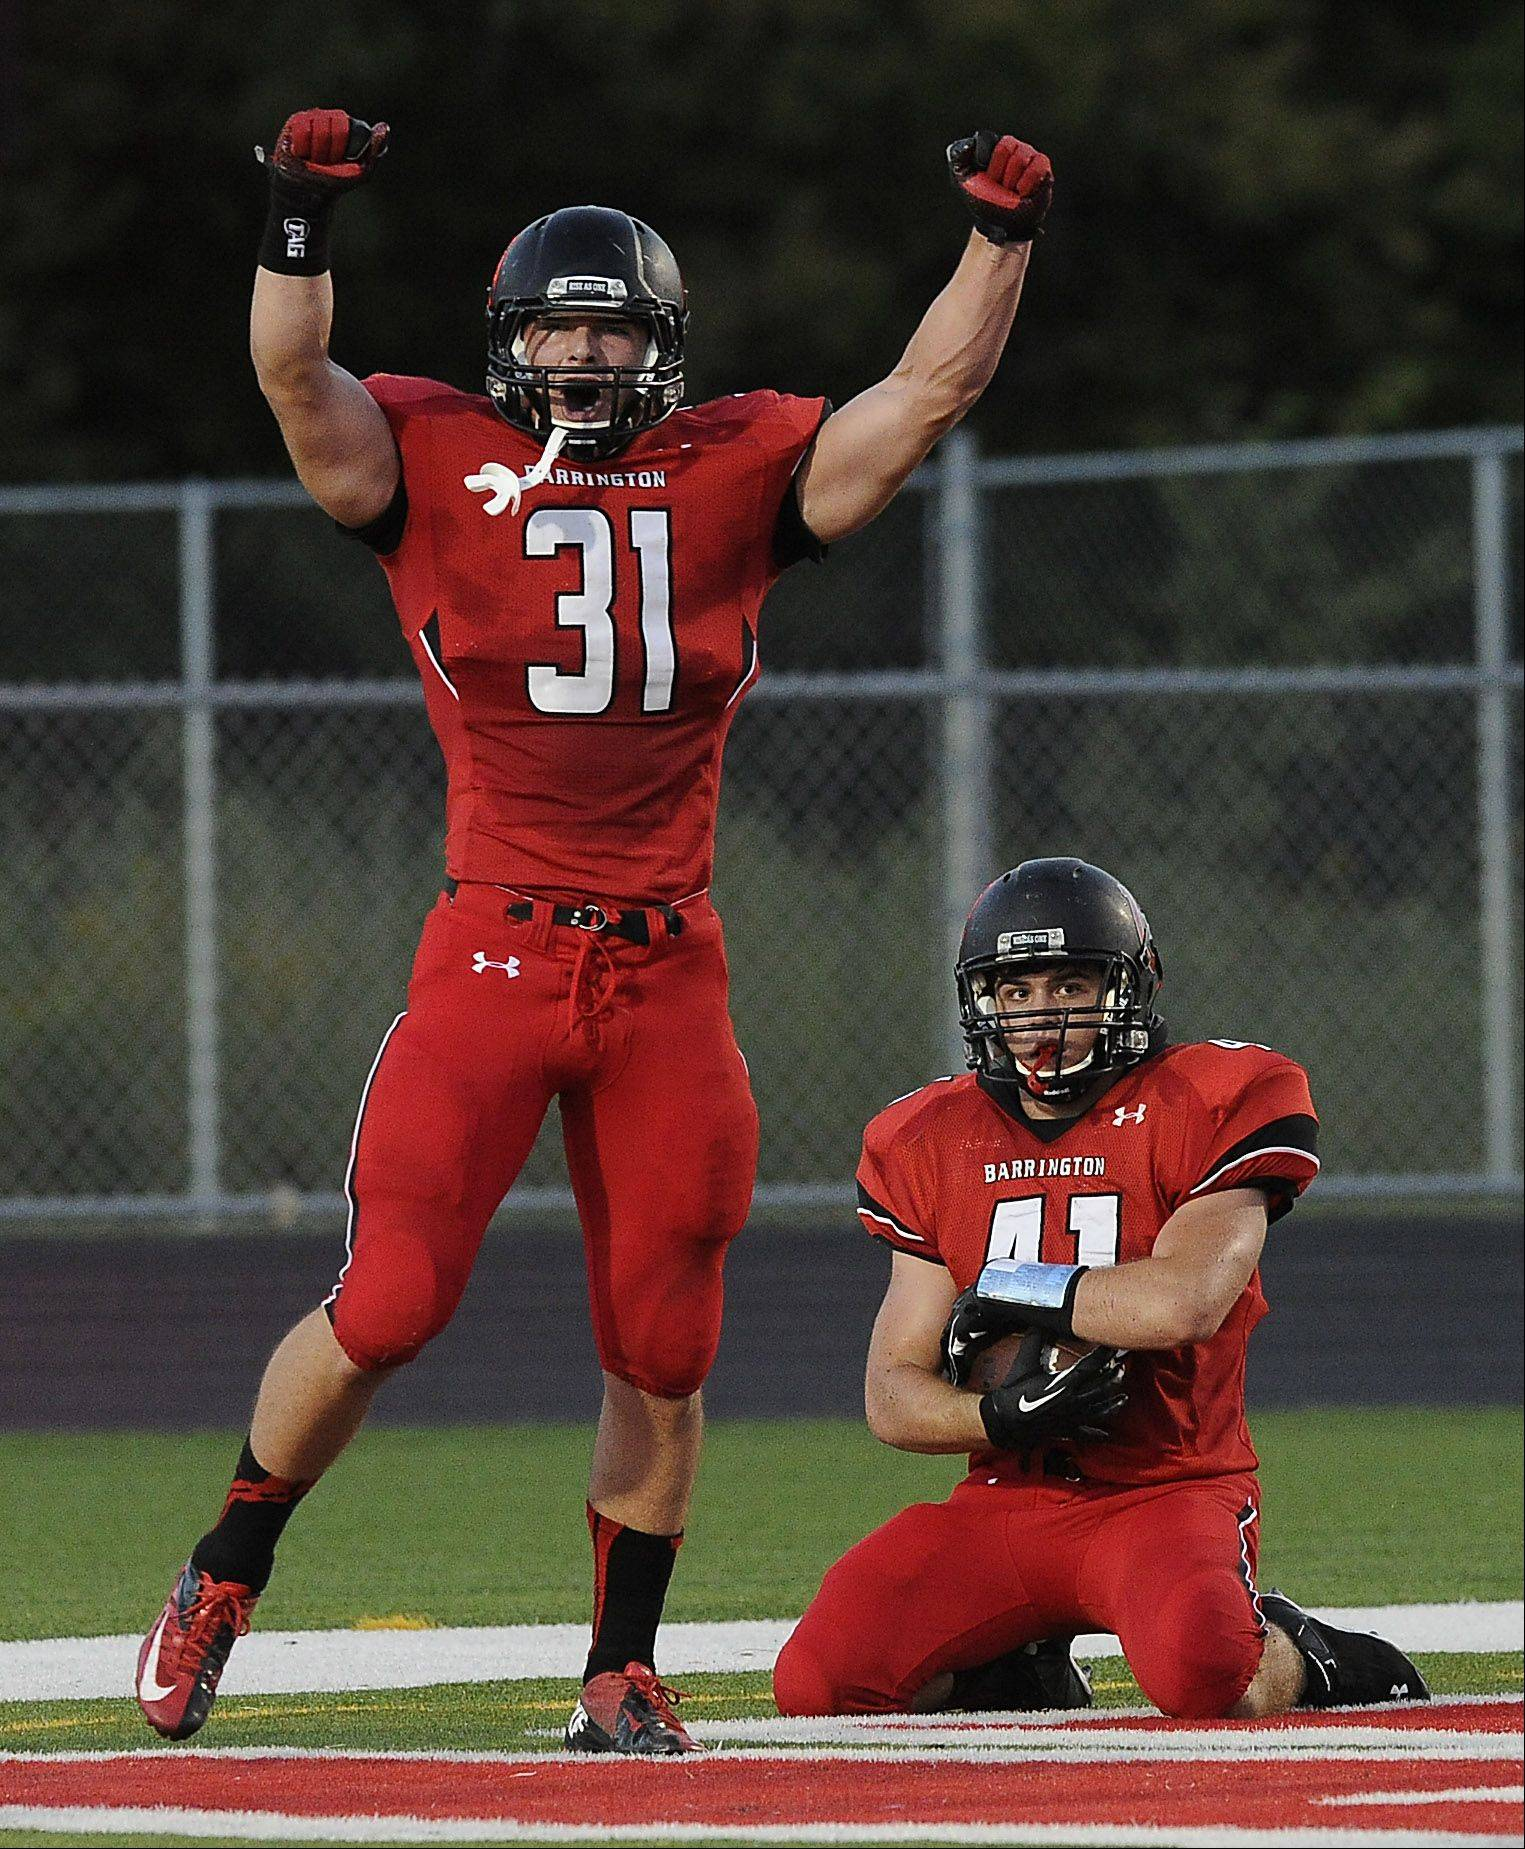 Barrington's Mark Bornhofen recovers a block punt for a touchdown as his teammate Yovani Romano celebrates.